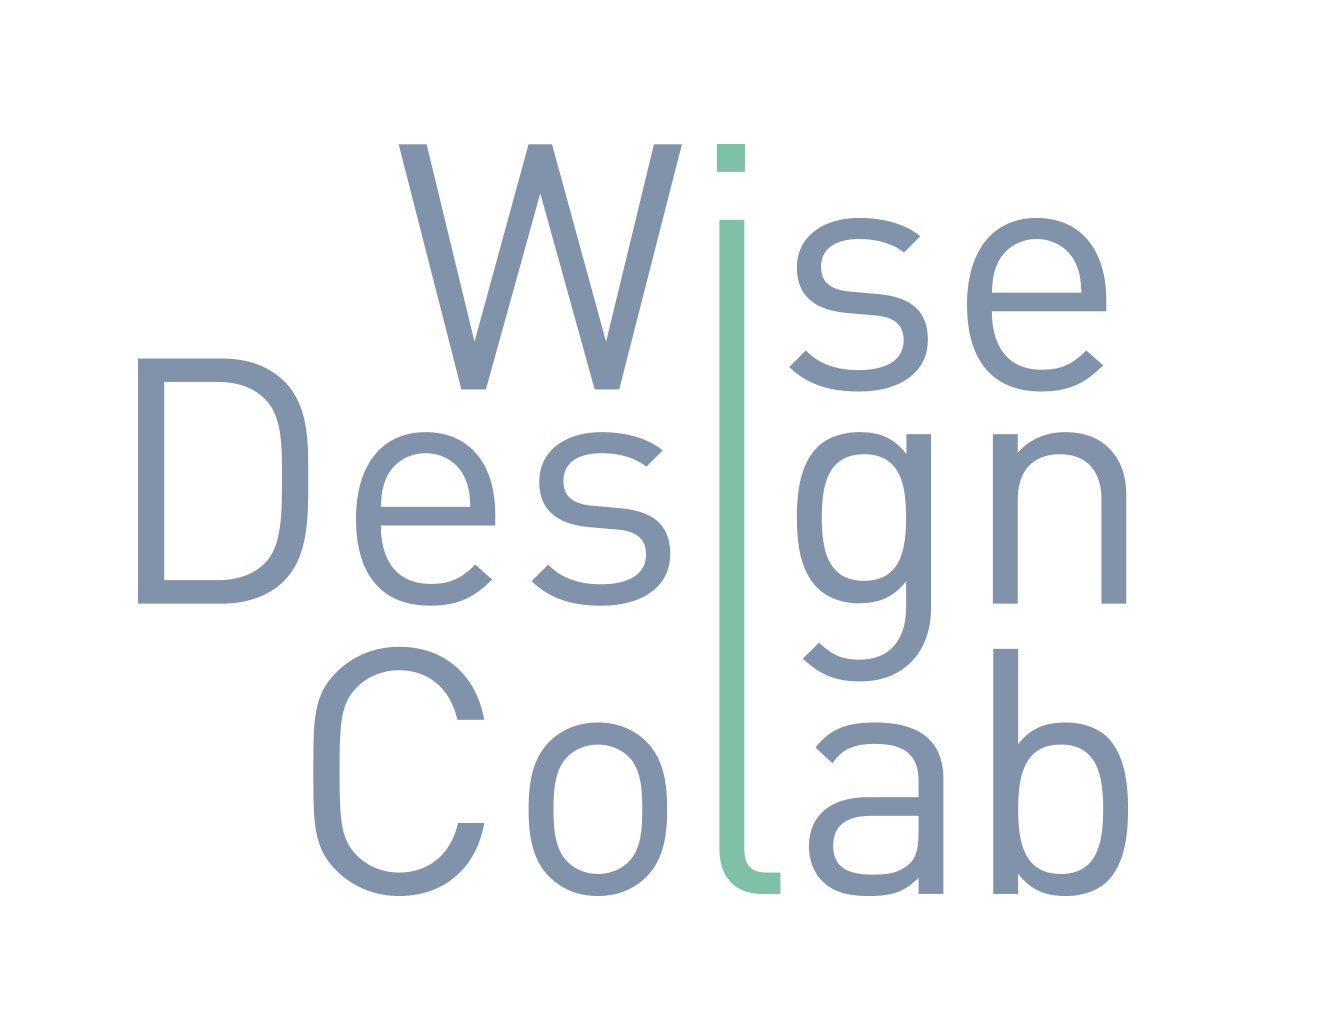 Wise Design Colab